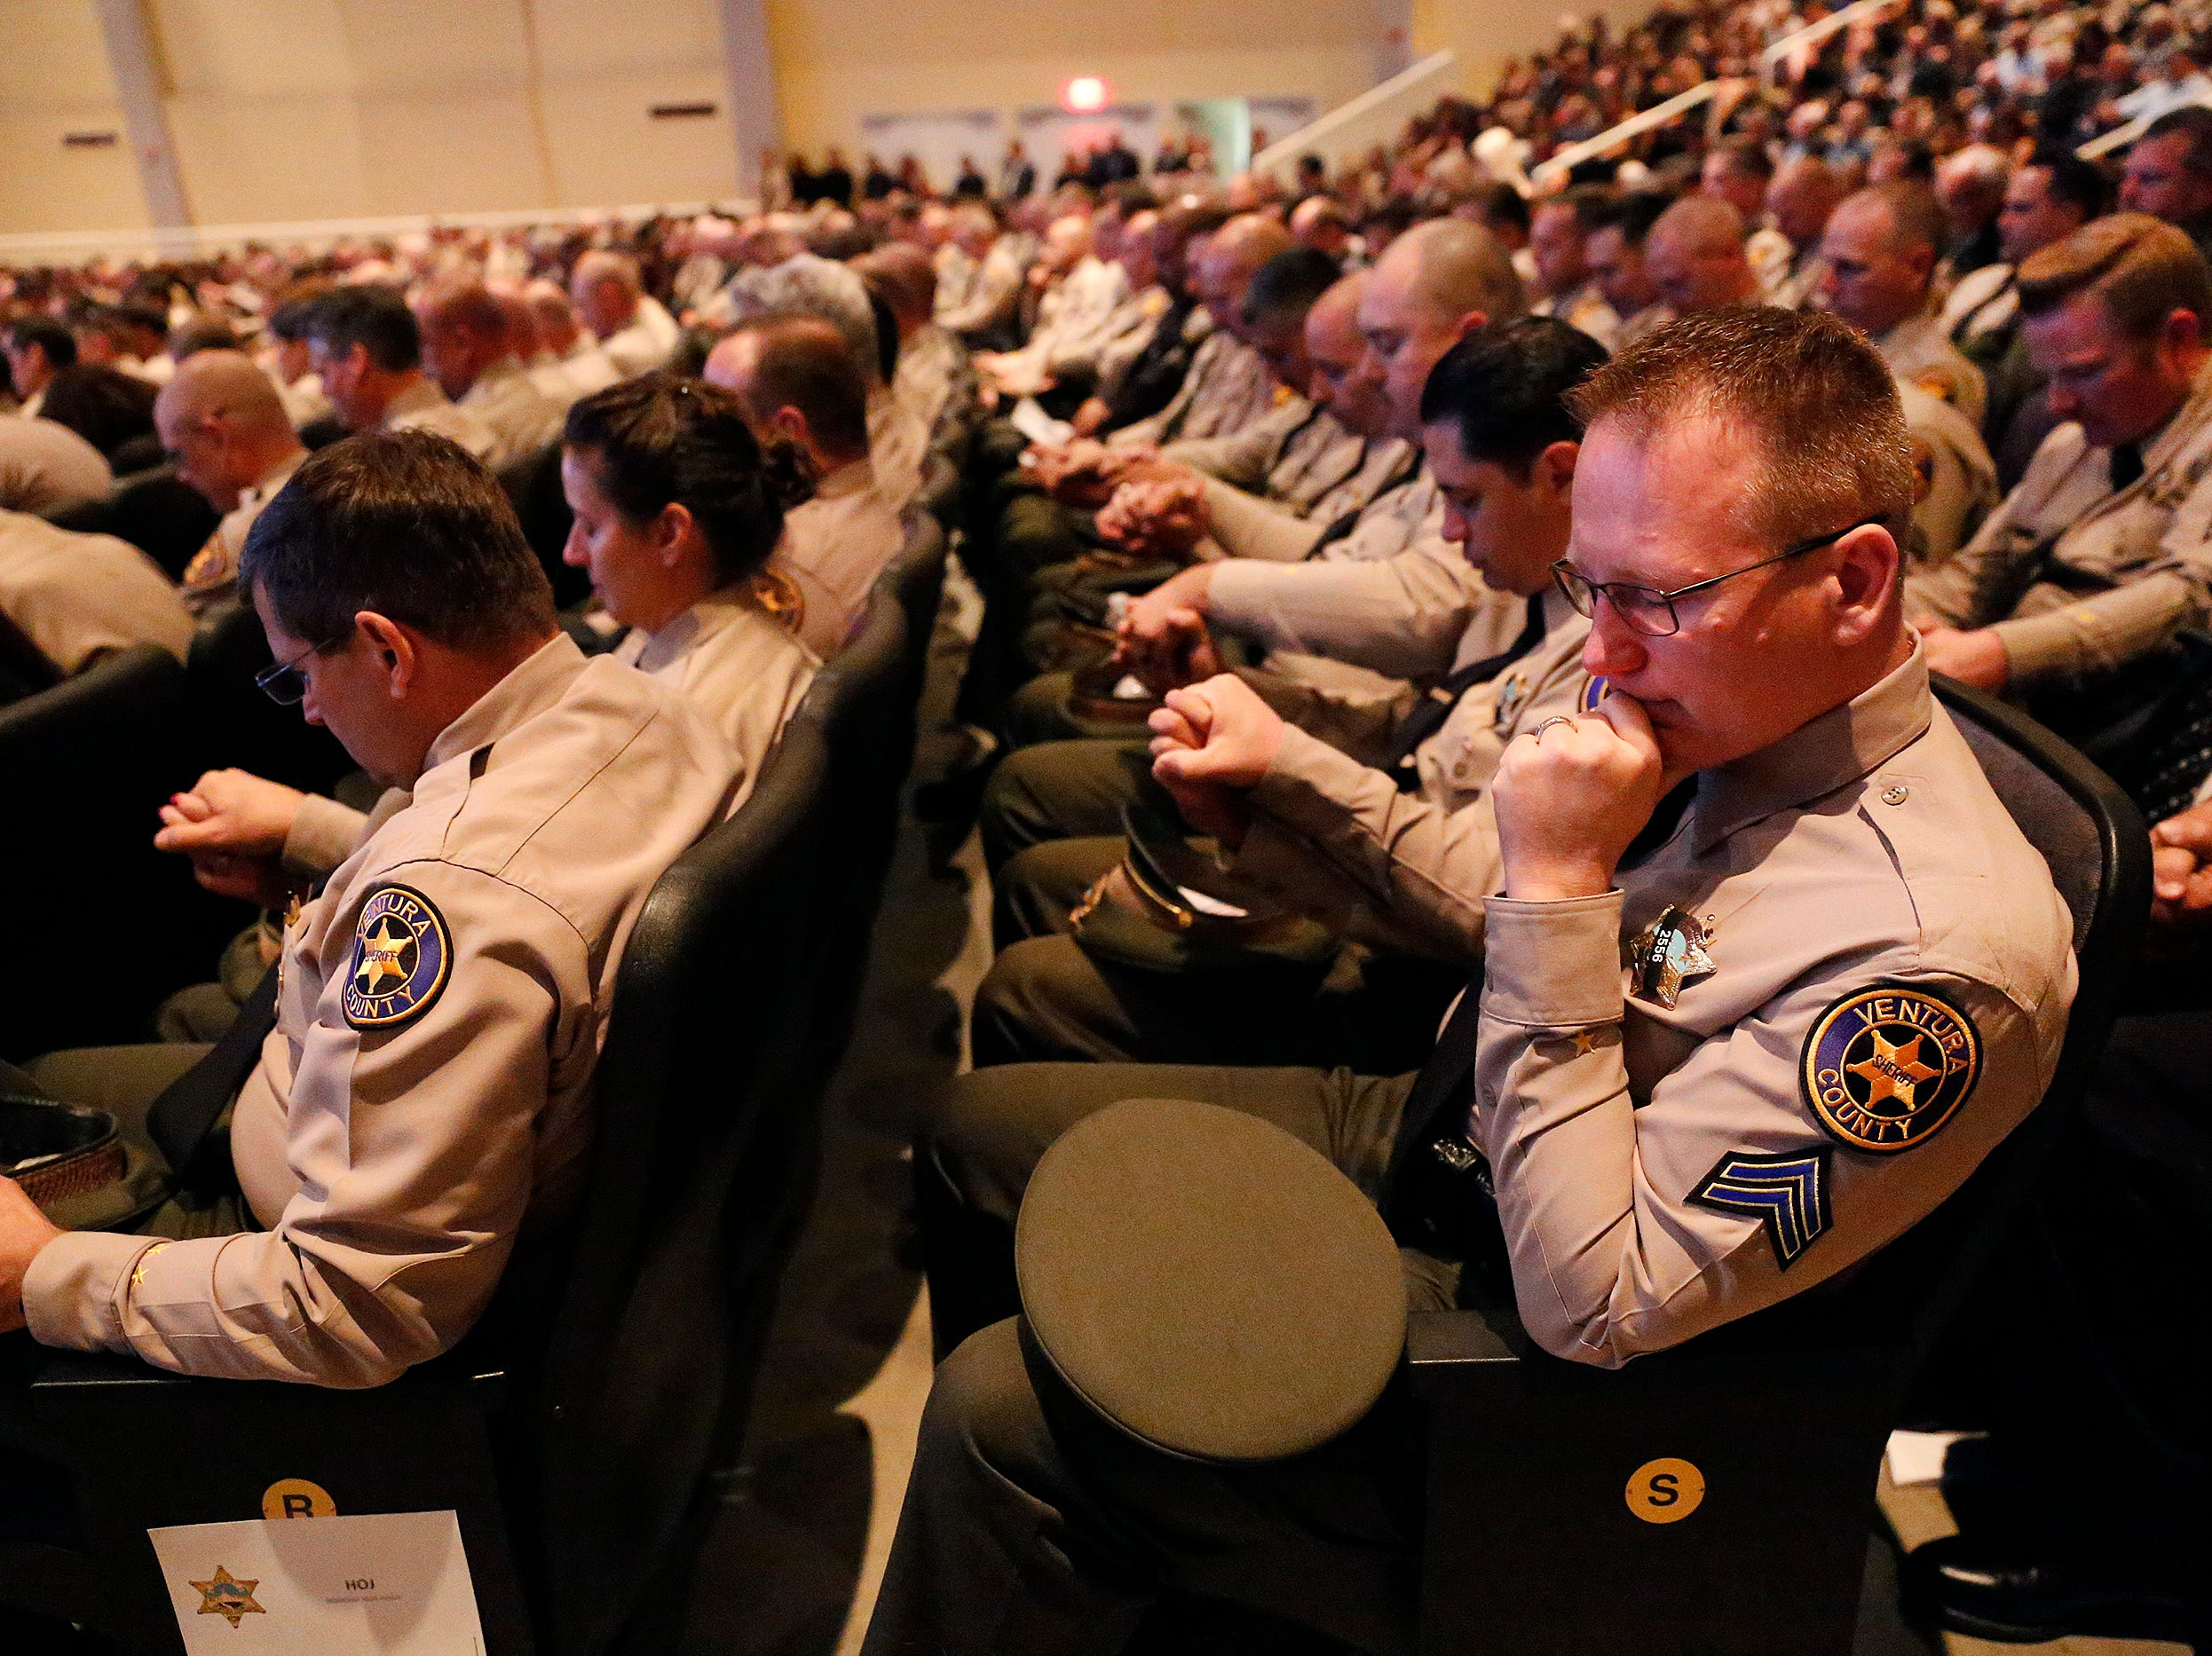 Deputy Dan McLaughlin, right, holds hands with other deputies during a closing prayer of the memorial service for Ventura County Sheriff's Office Sgt. Ron Helus at Calvary Community Church in Westlake Village on Thursday.